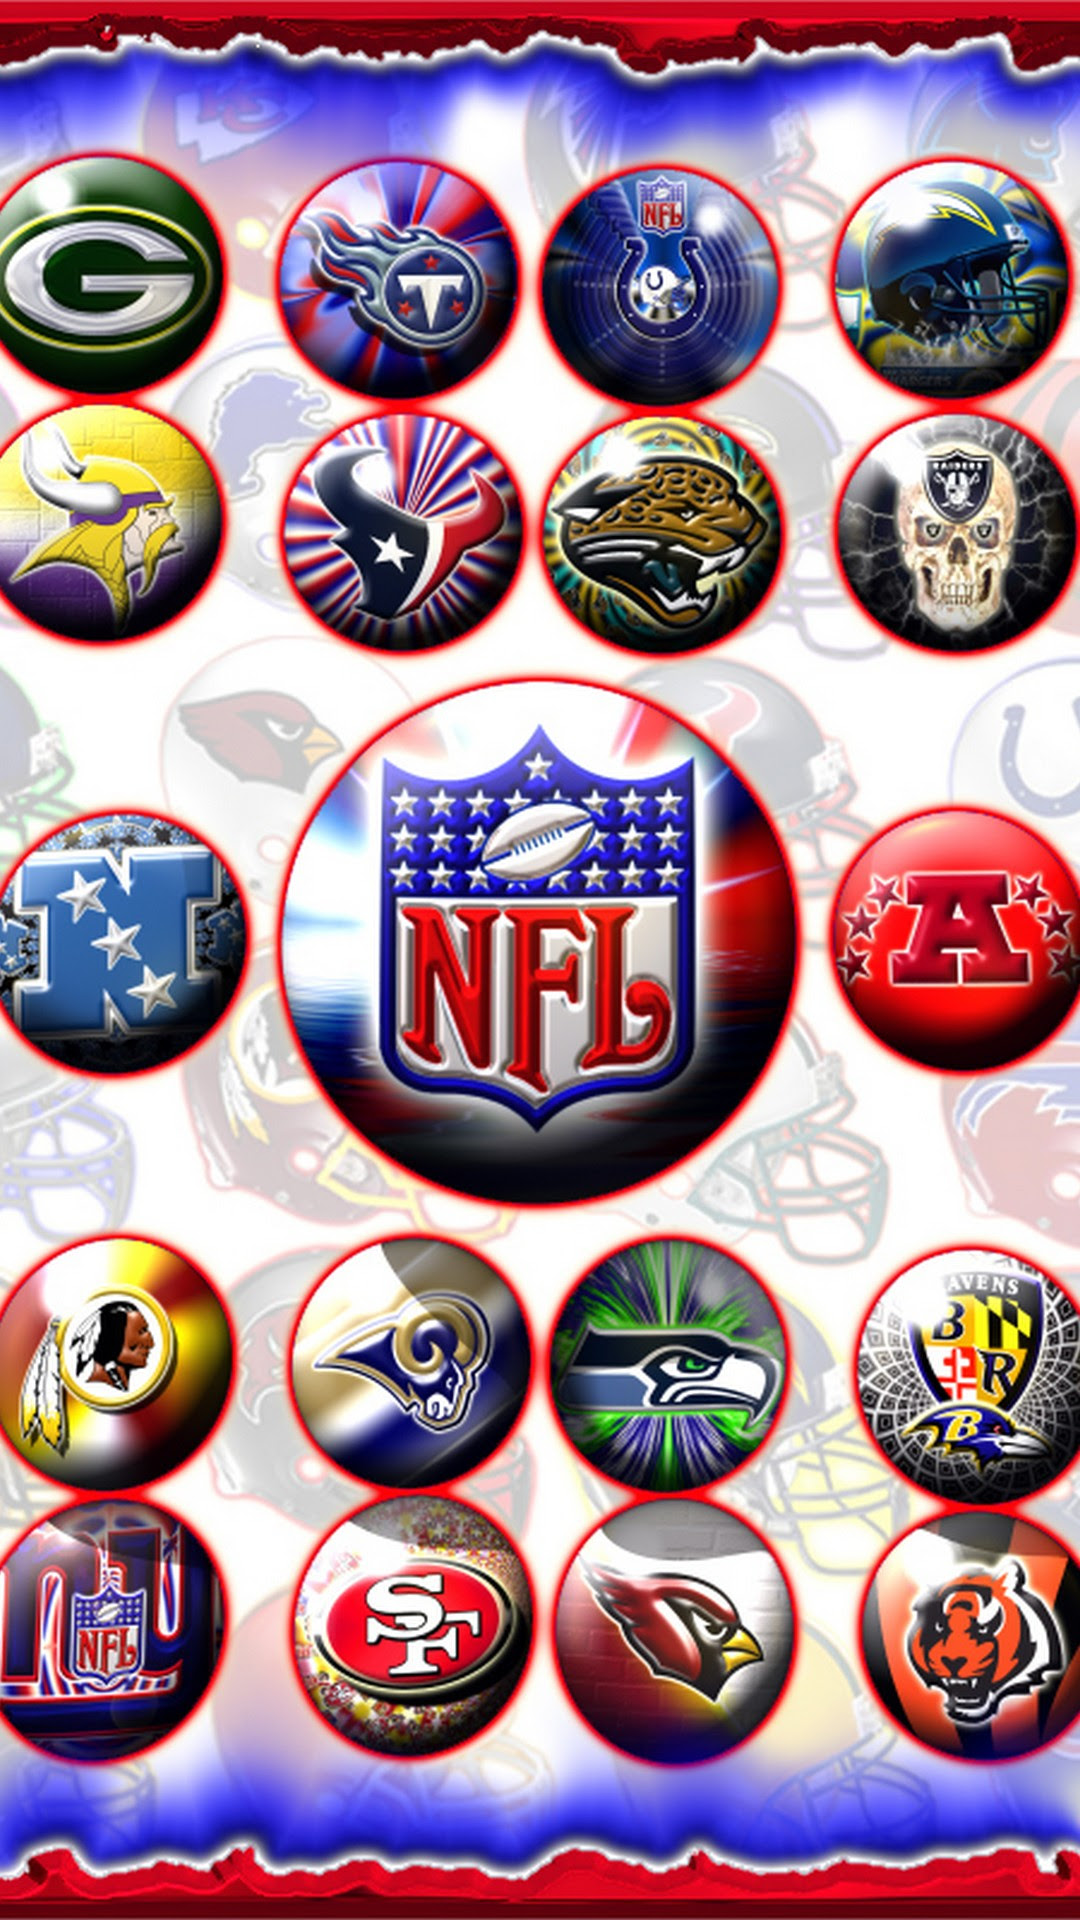 NFL iPhone Wallpapers   2019 NFL Football Wallpapers